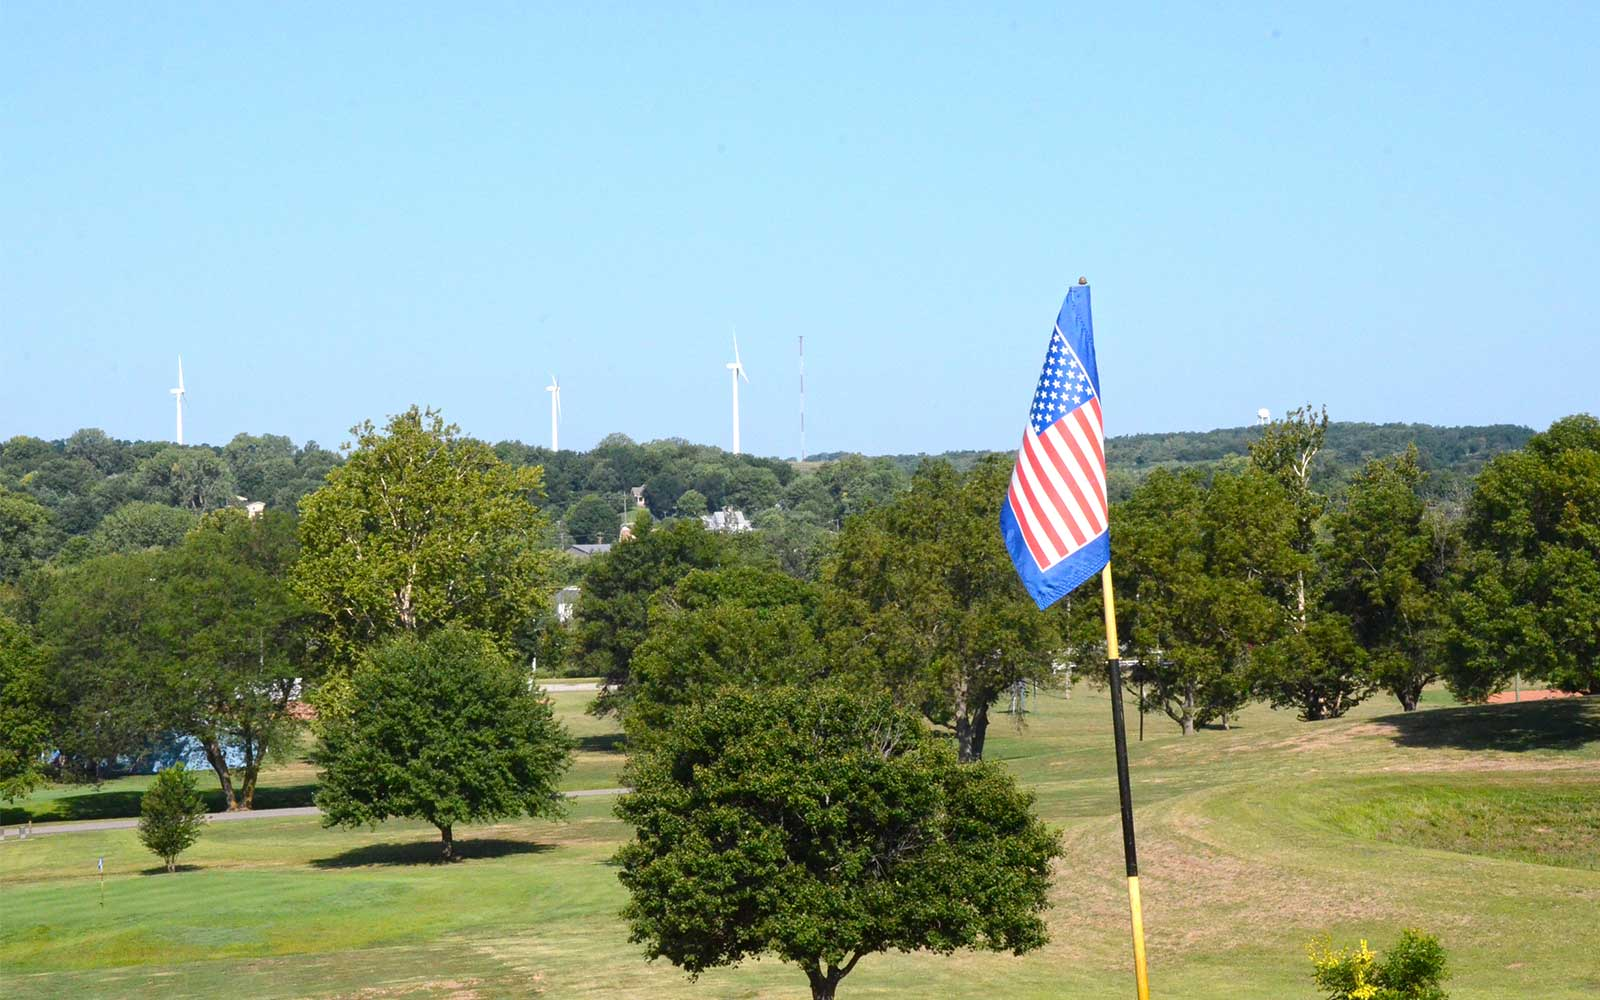 Rock-Port-Golf-and-Country-Club,-Rock-Port,-MO-Windmills